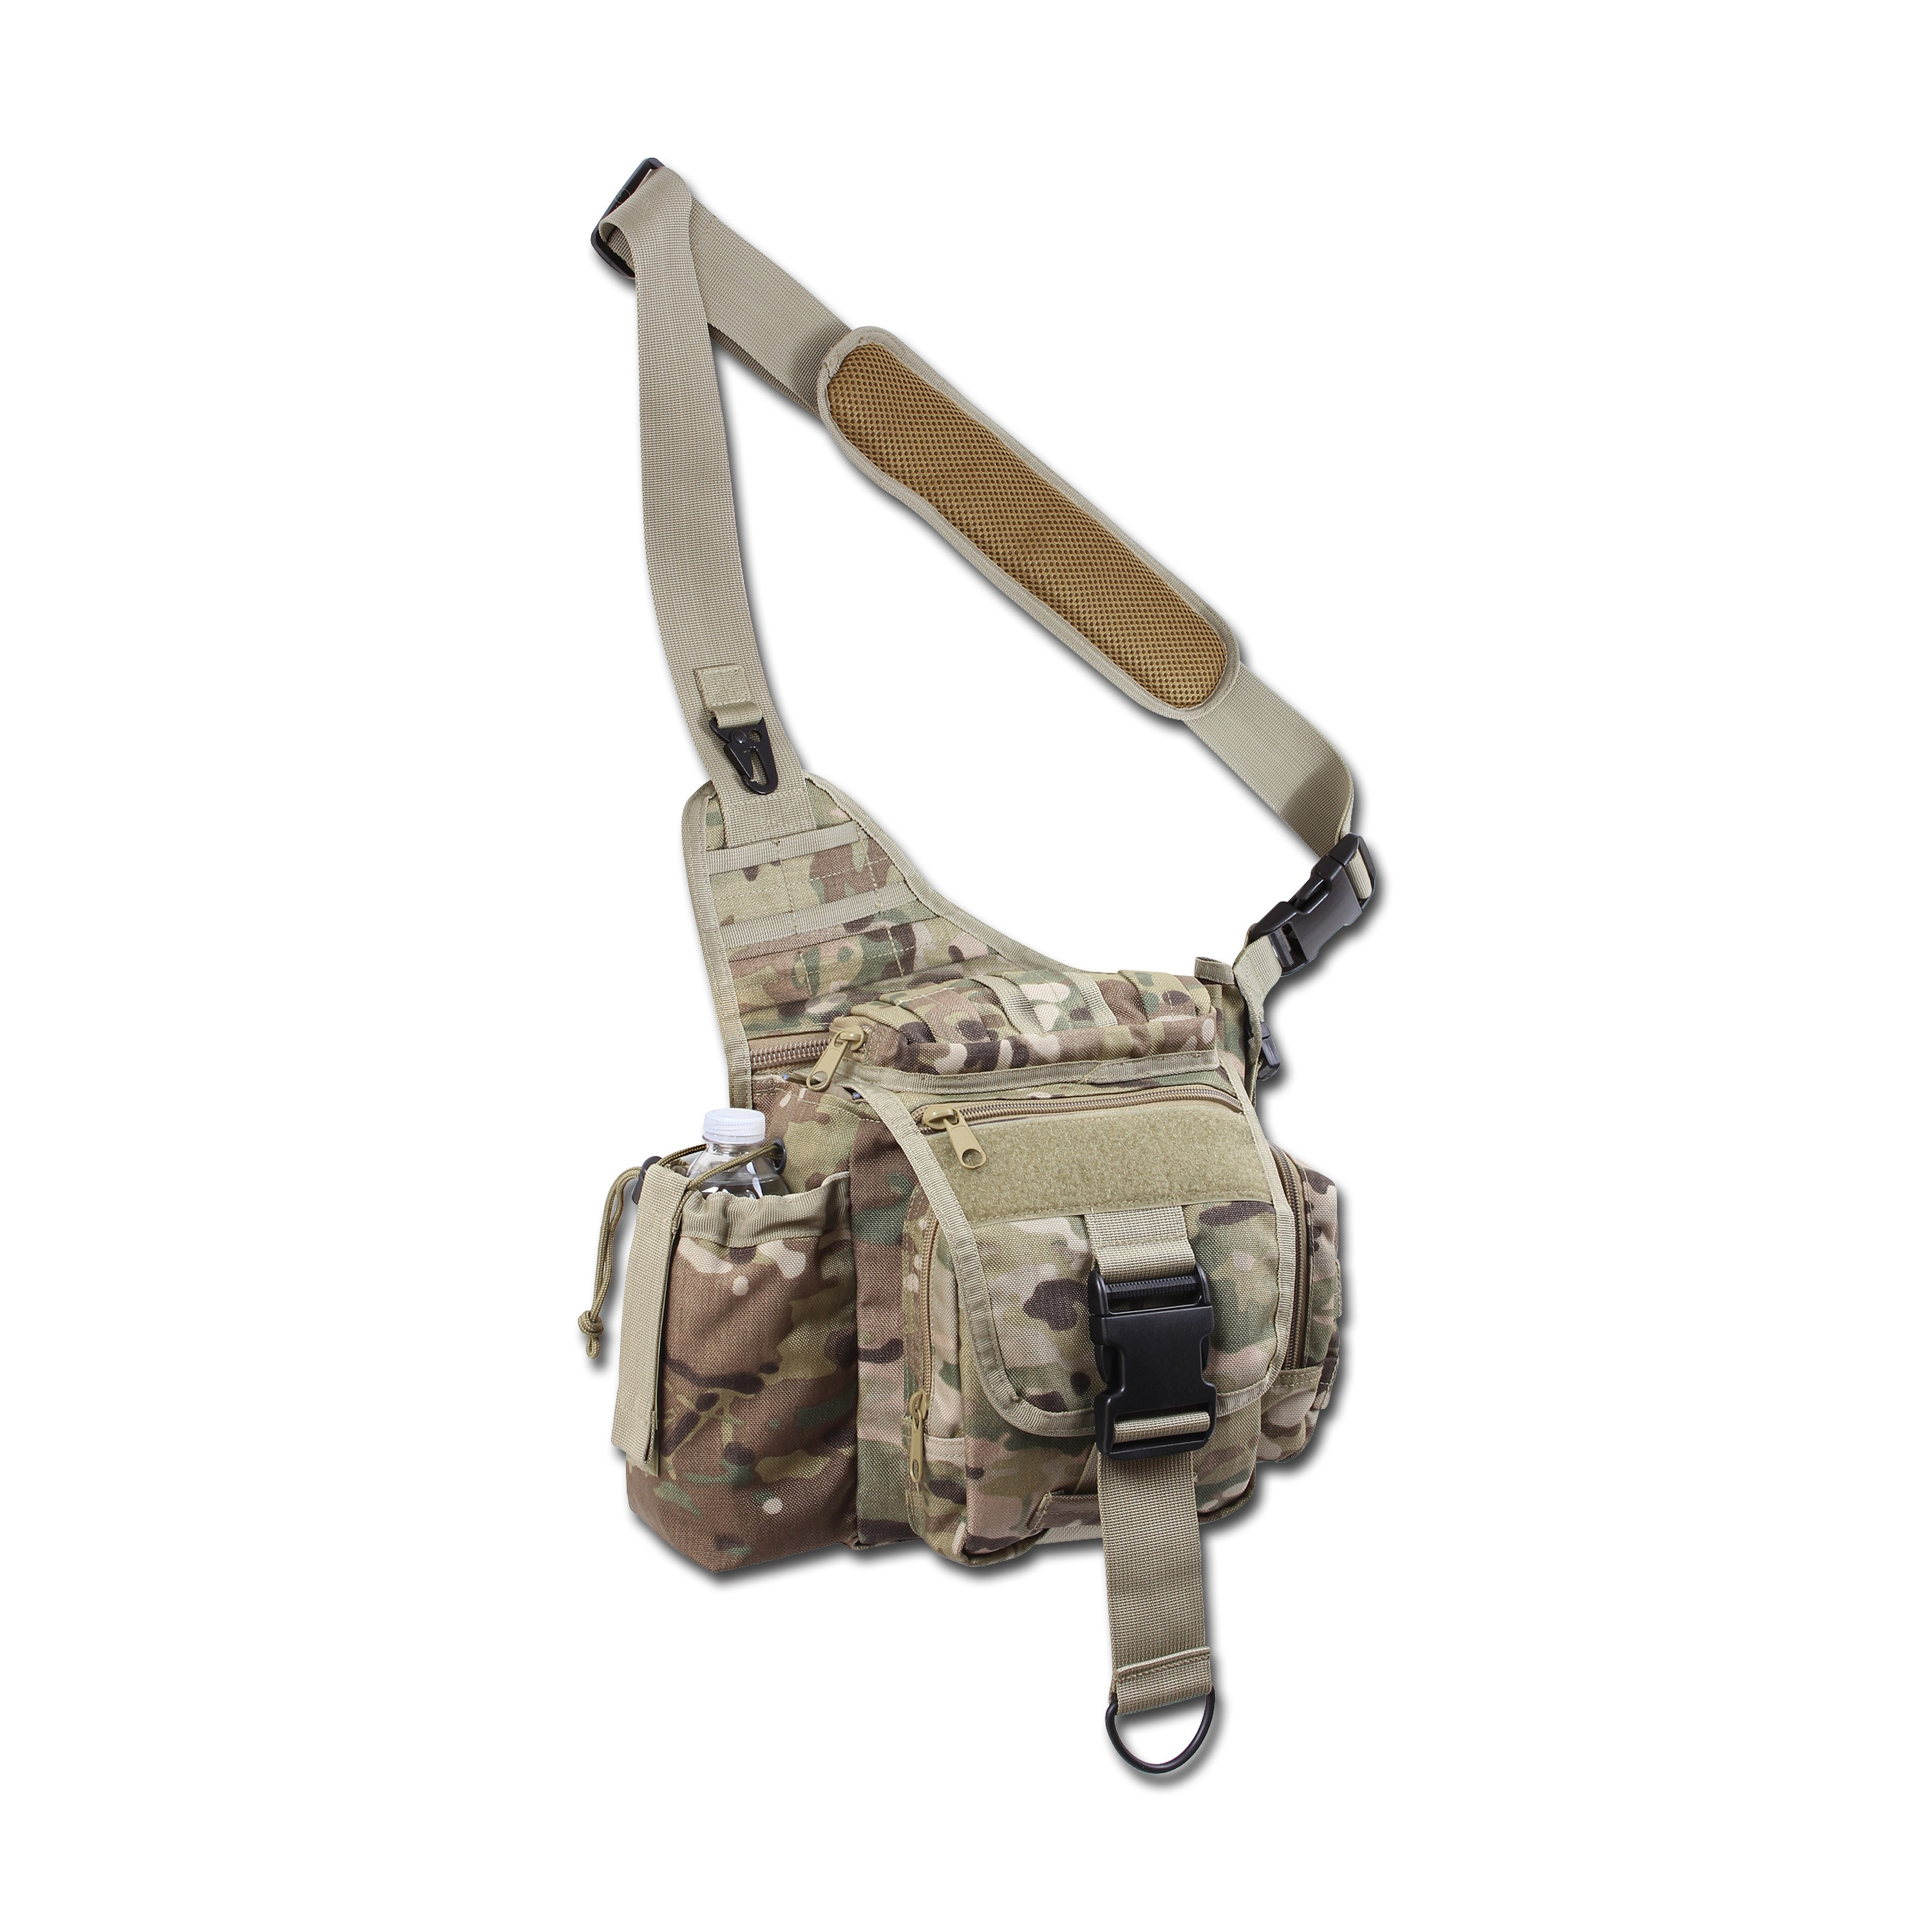 Tasche Rothco Advanced Tactical multicam